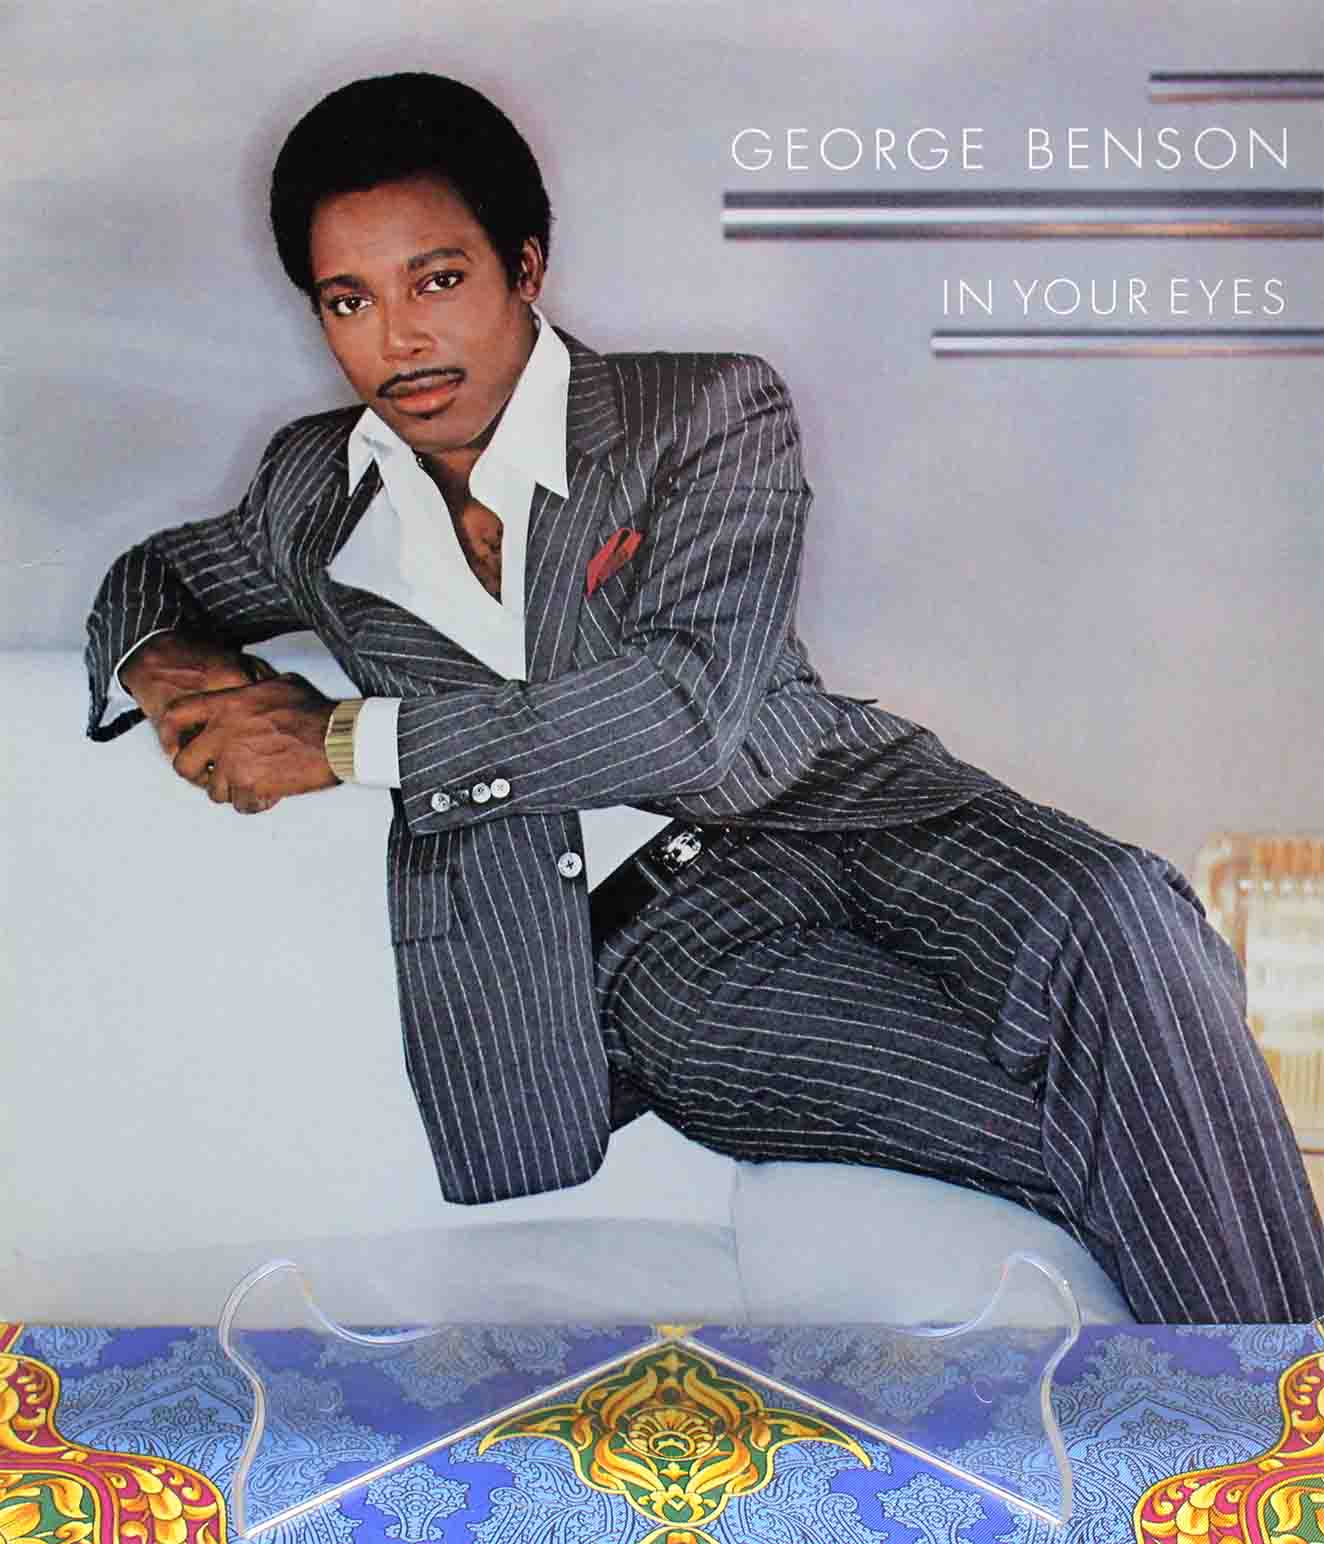 George Benson - In your eyes 01